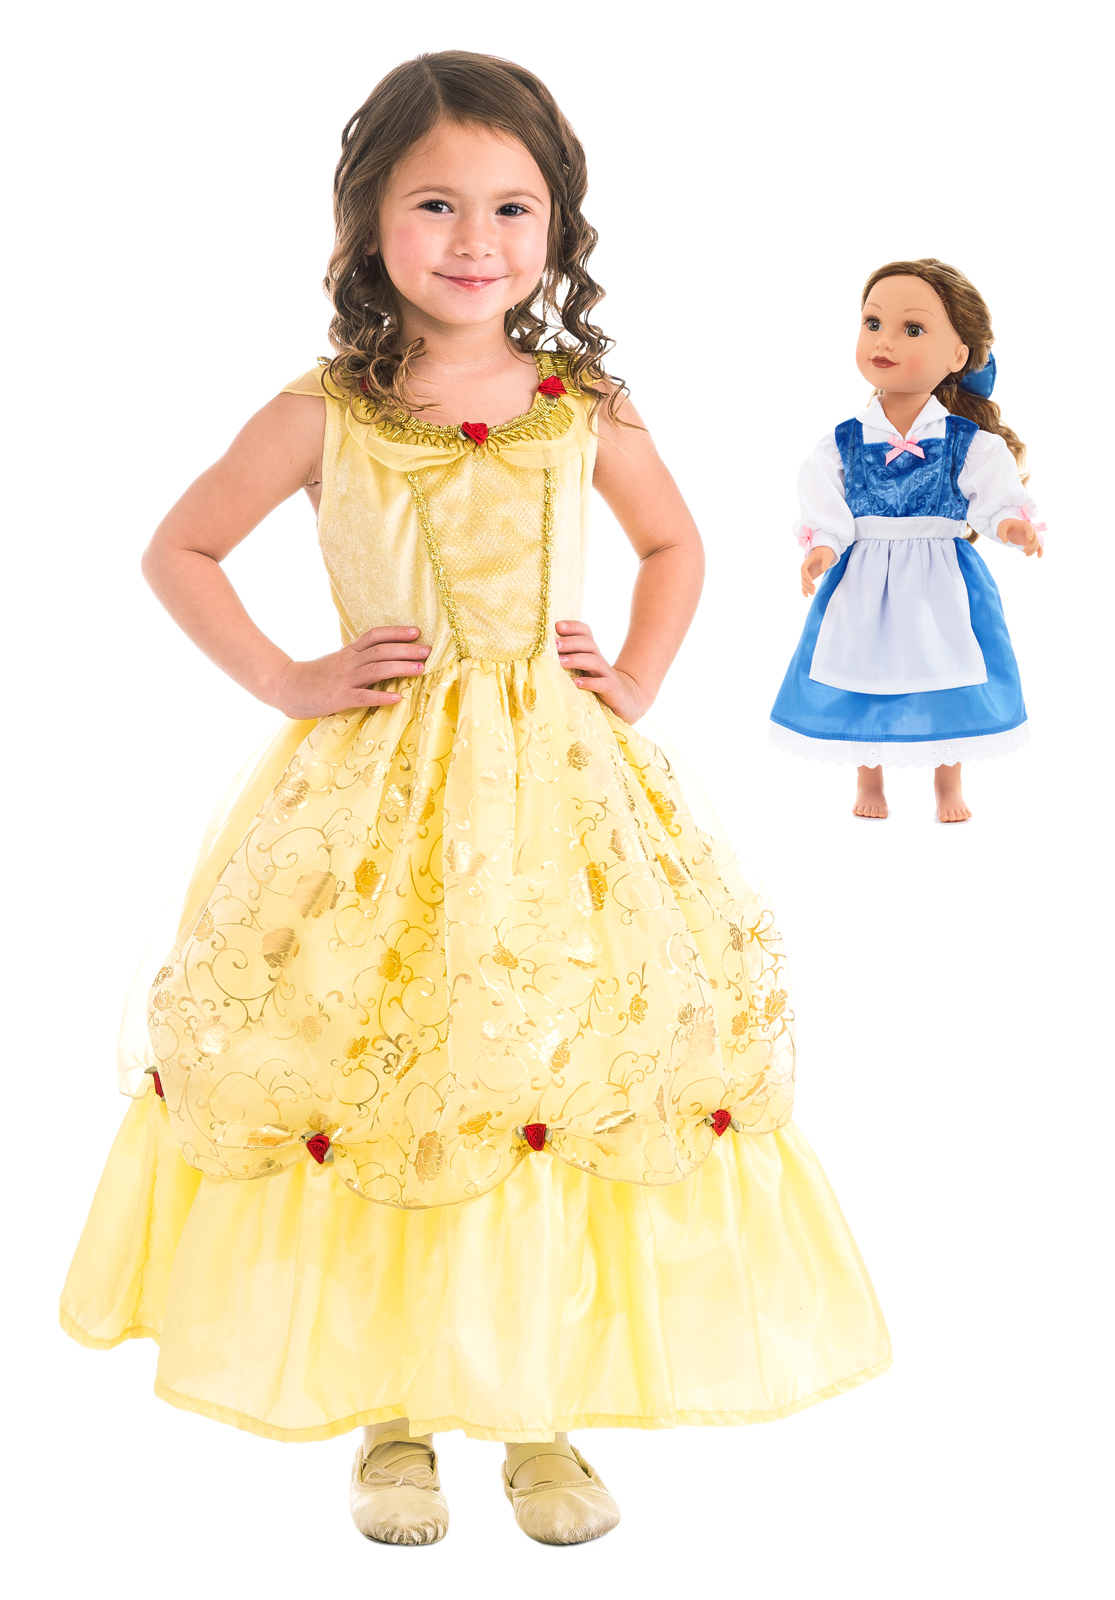 422f74bcc Belle of the Ball Beauty Dress Up Costume for Girls